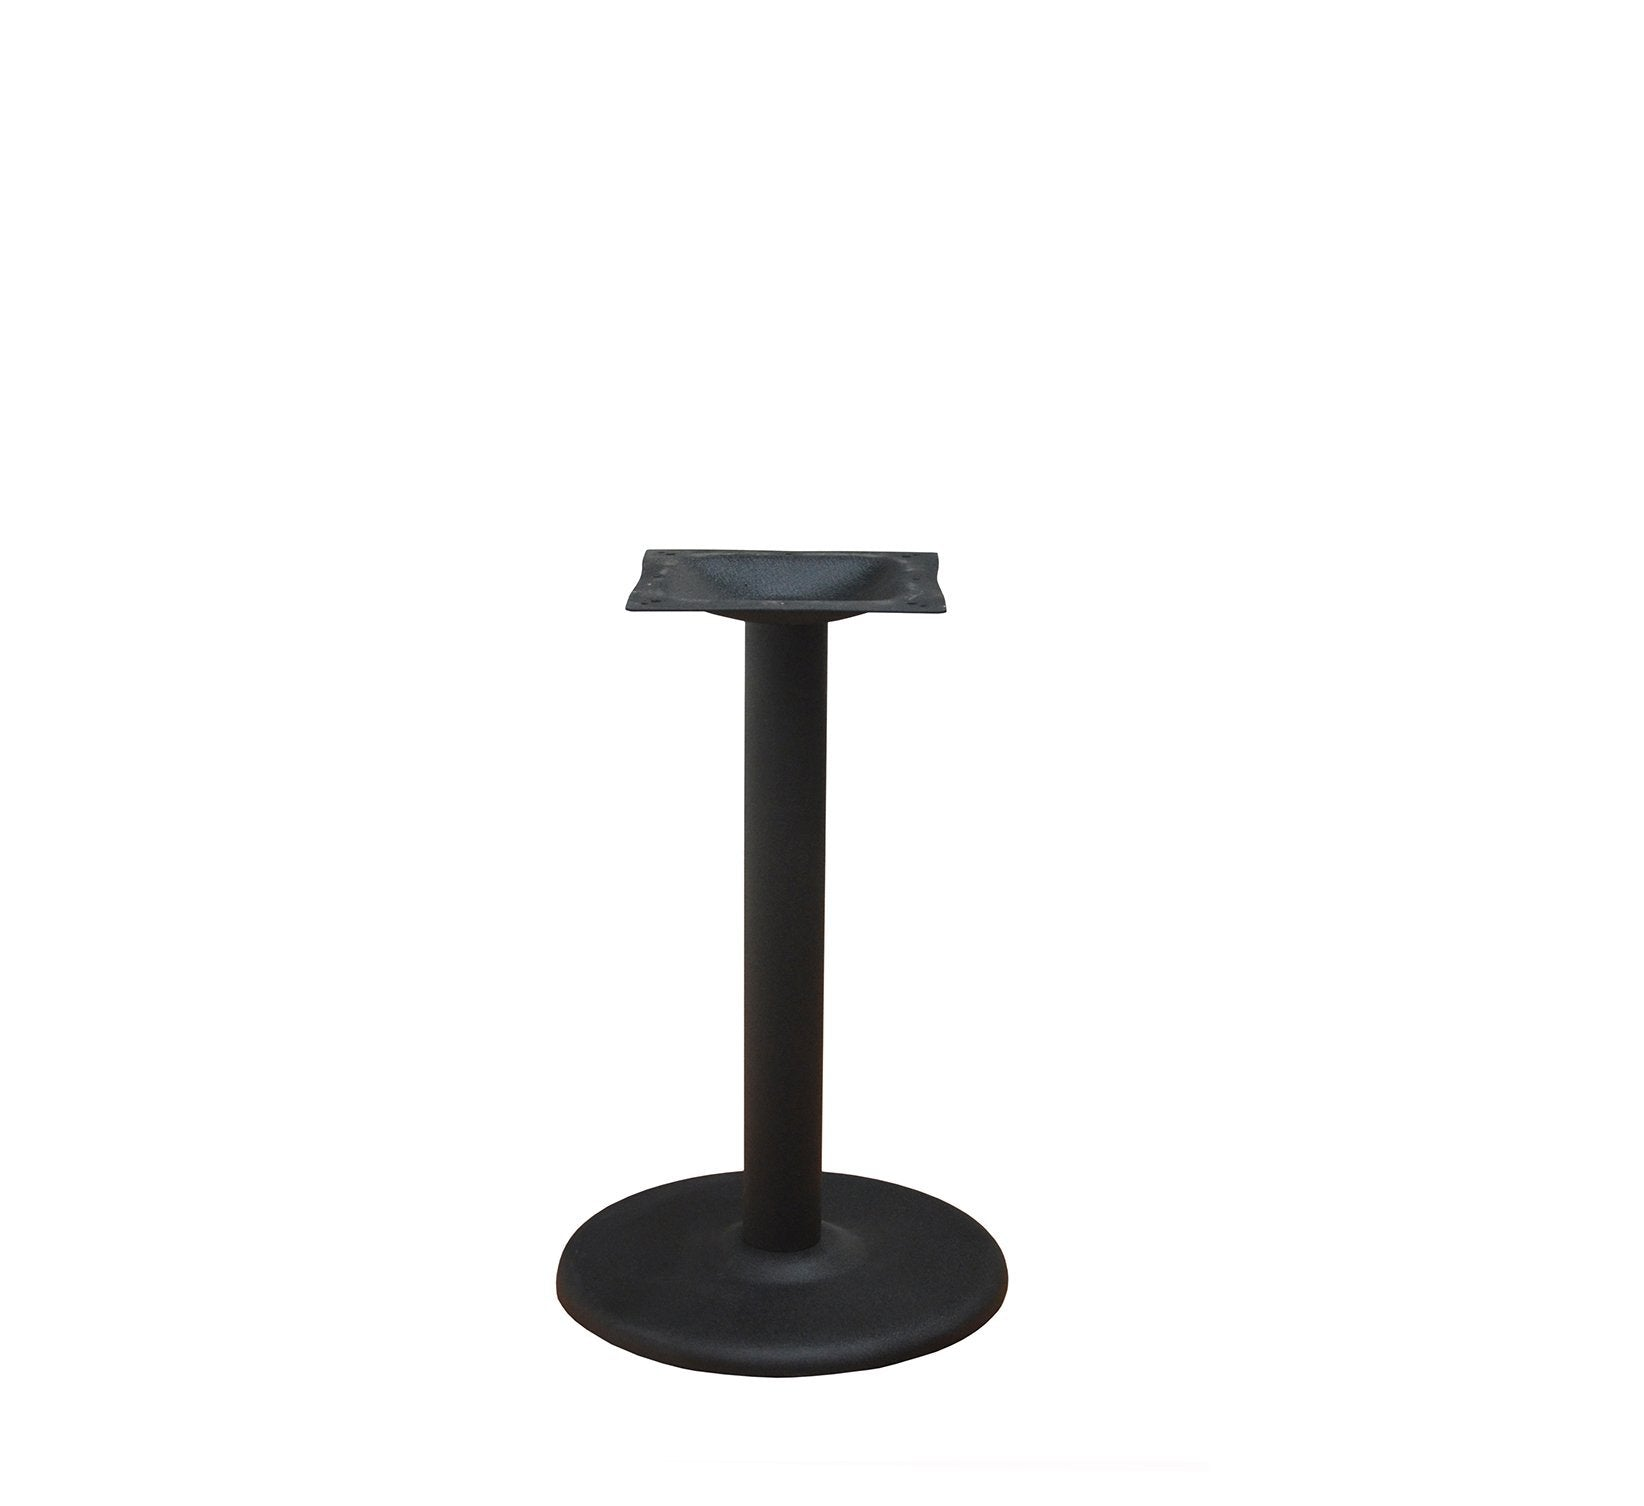 "DHC BS-BLK-18R-28 H Steel Round Table Base For Restaurants, 28""H Black Finish"